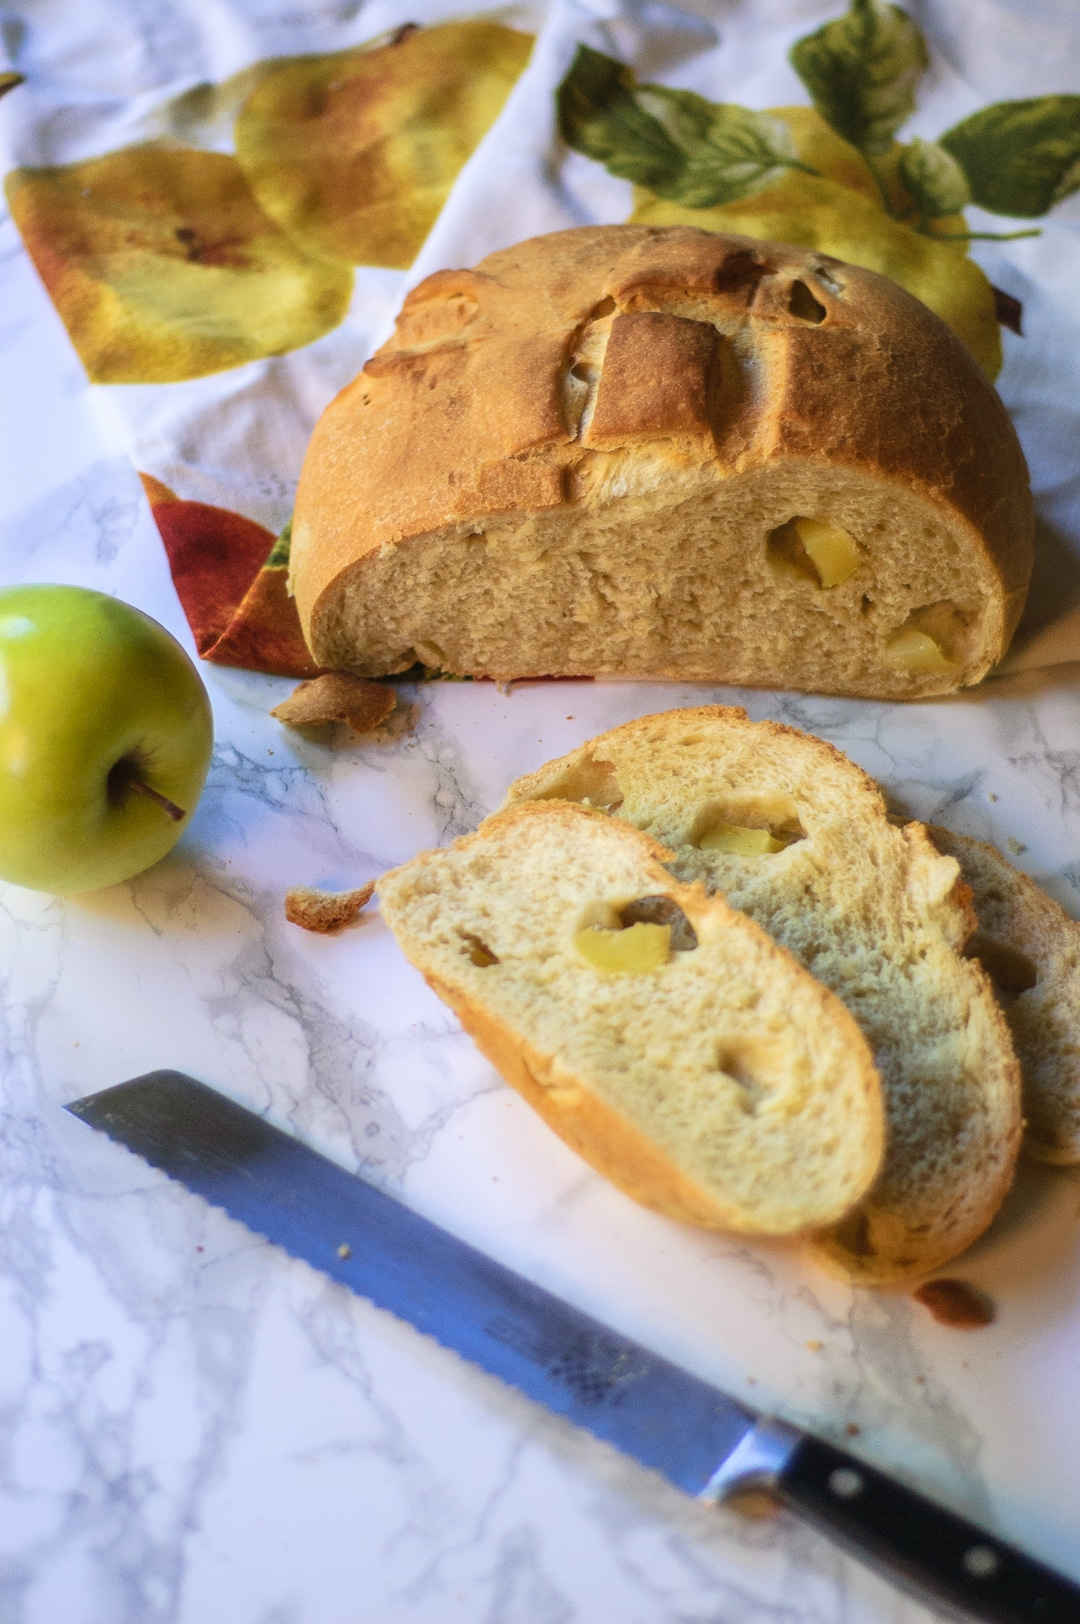 This Apple Olive Oil Boulé is a perfect bread for making epic Thanksgiving leftover turkey sandwiches, autumn french toast, or passing around the table!